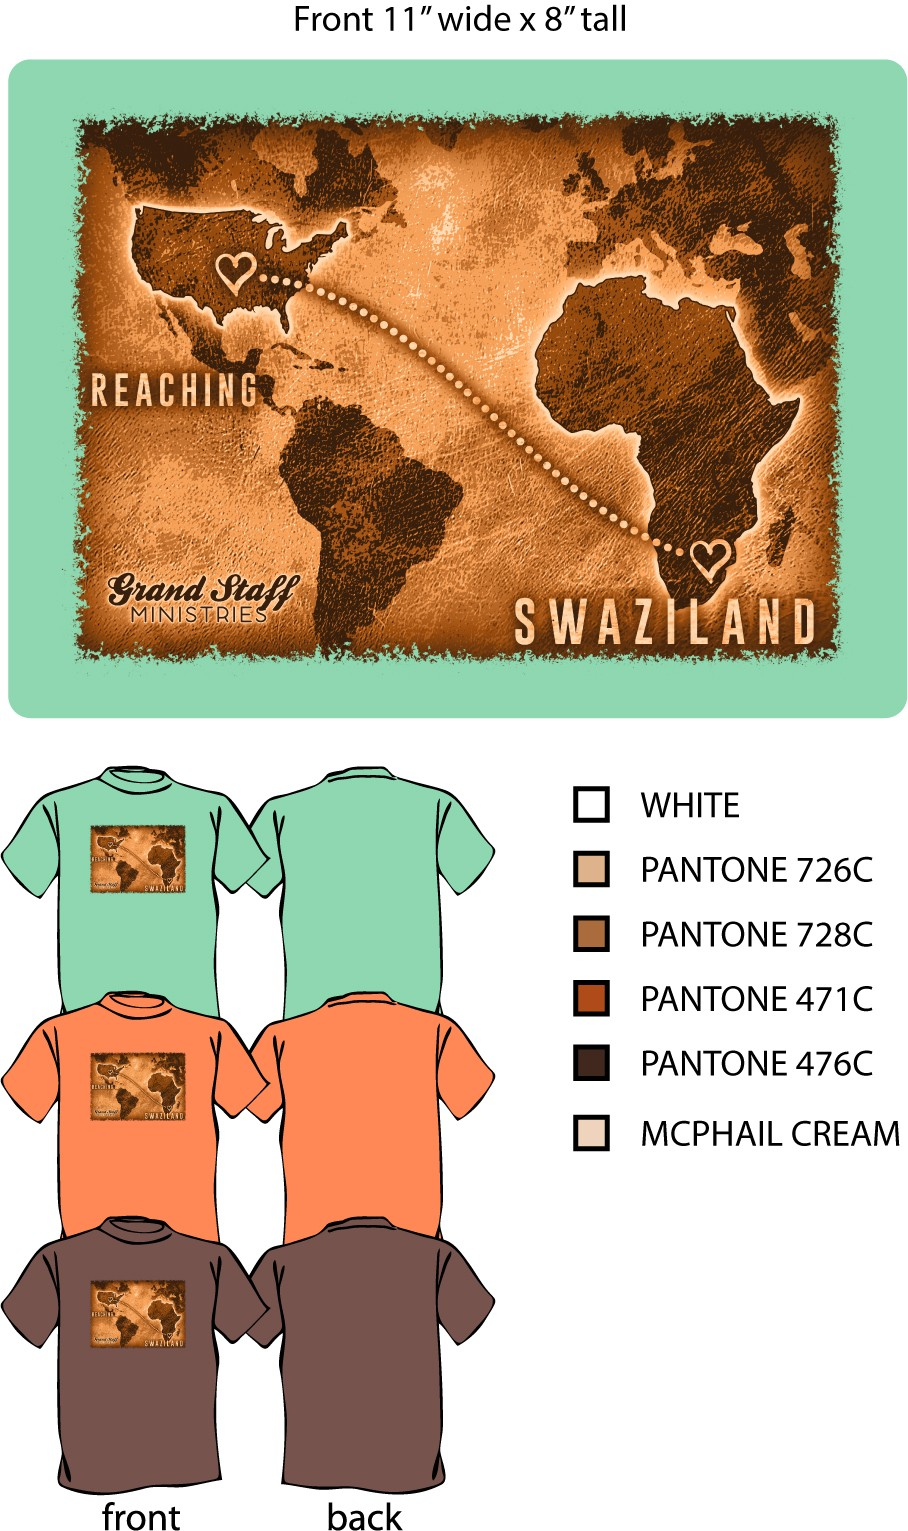 Reaching Swaziland Women's T-shirt, Mint